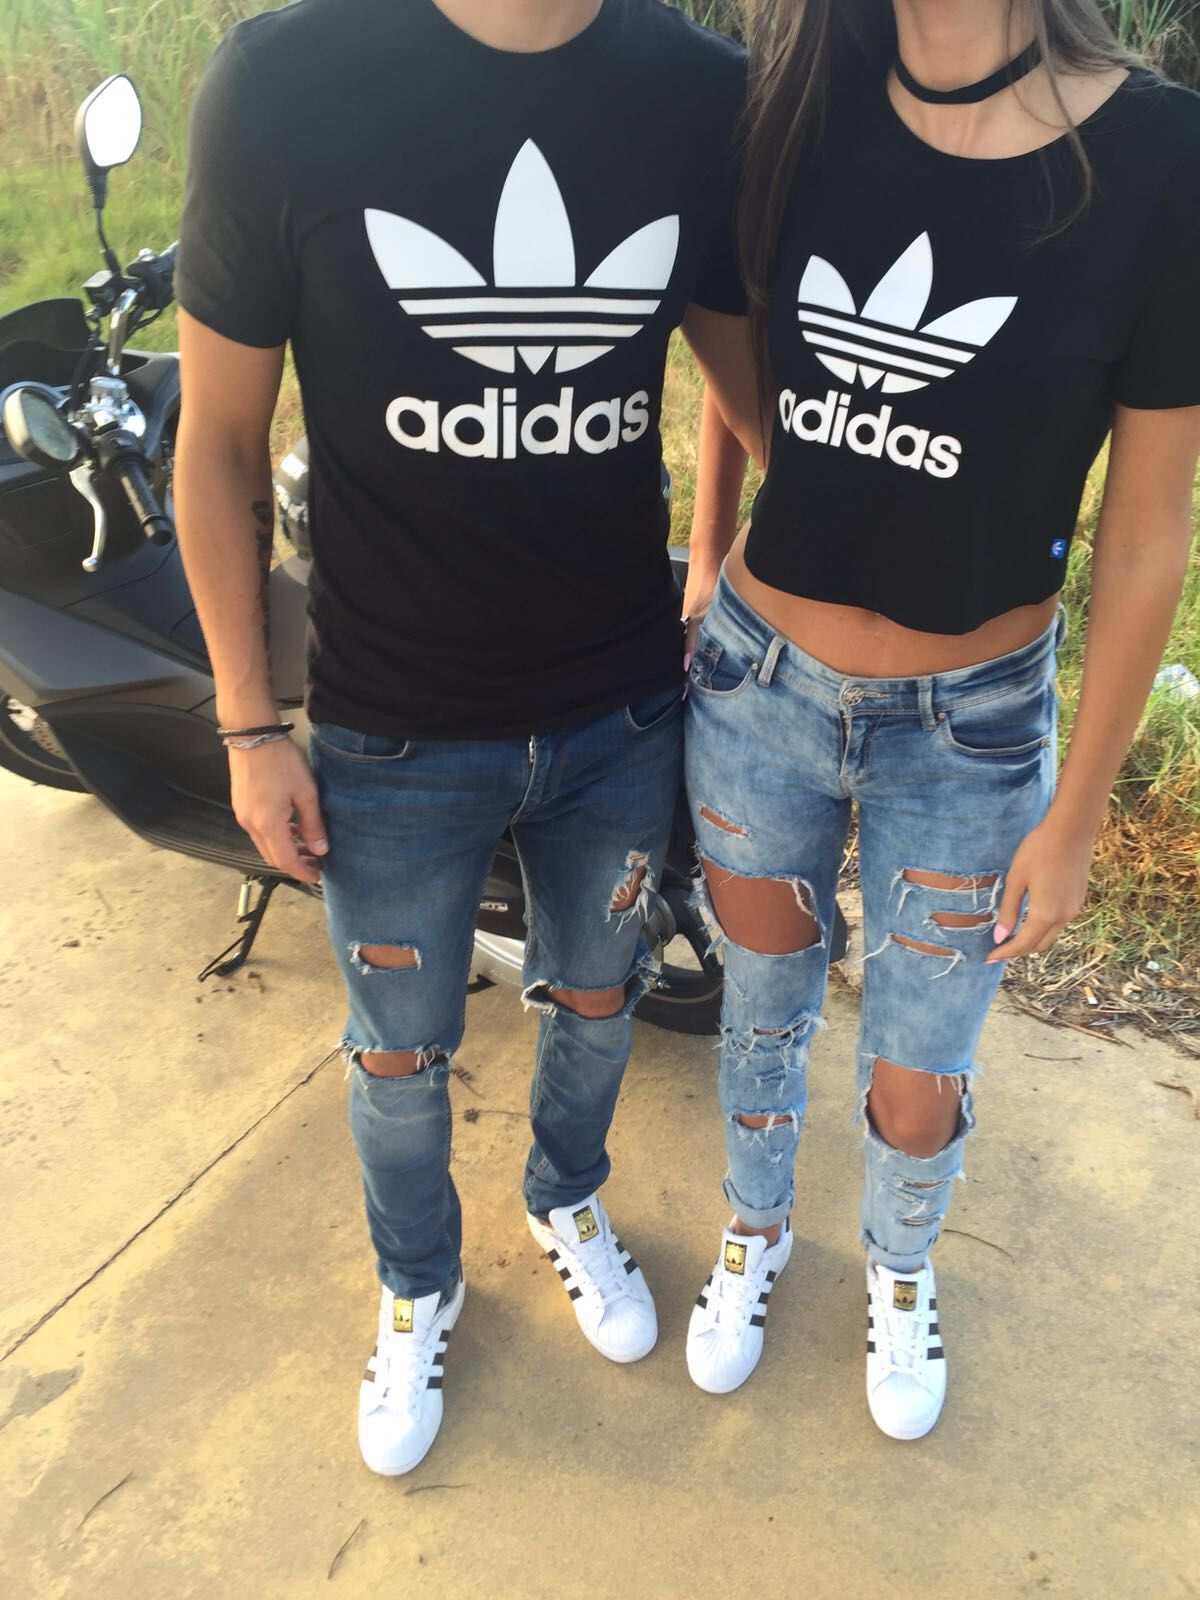 Adidas original | Matching couple outfits, Cute couple